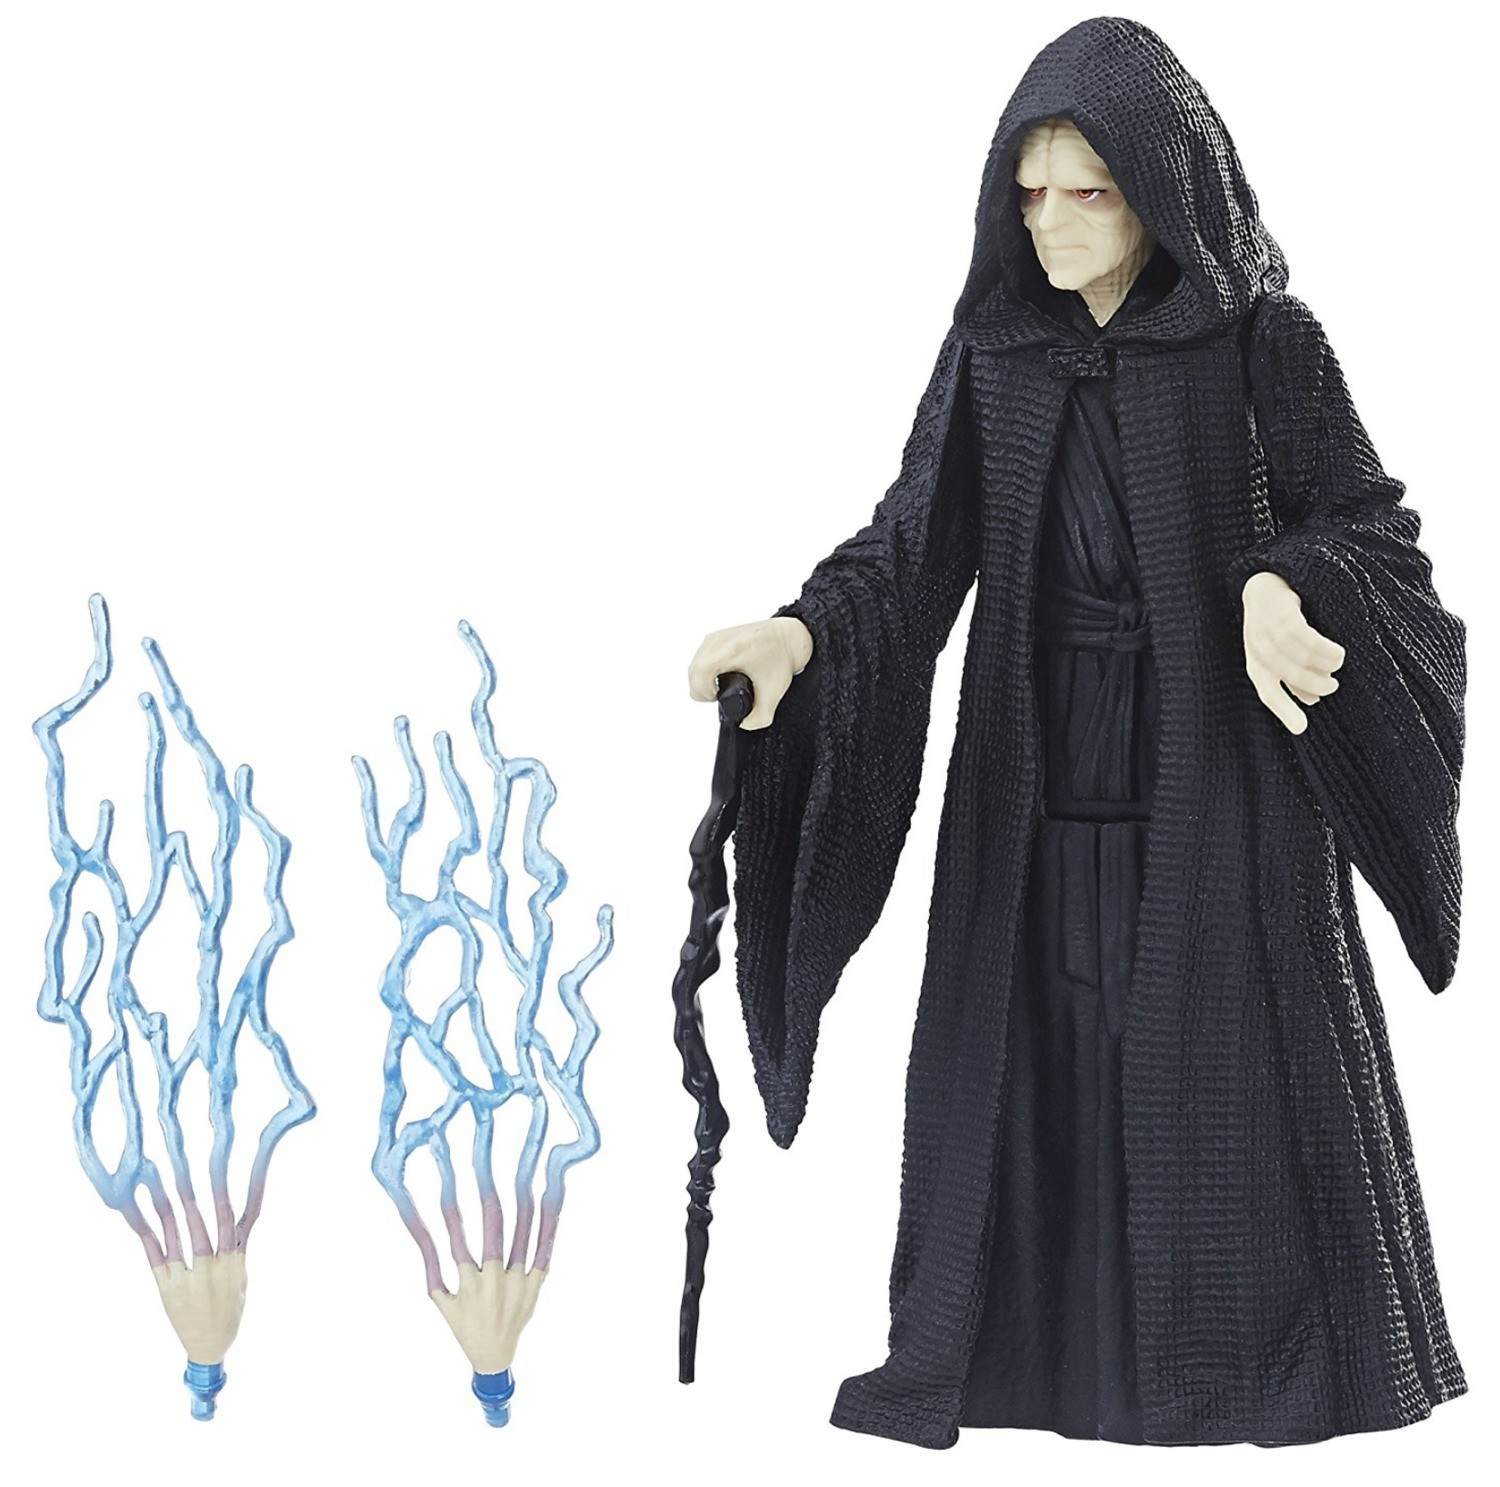 Emperor Palpatine Force Link The Last Jedi Action Figure